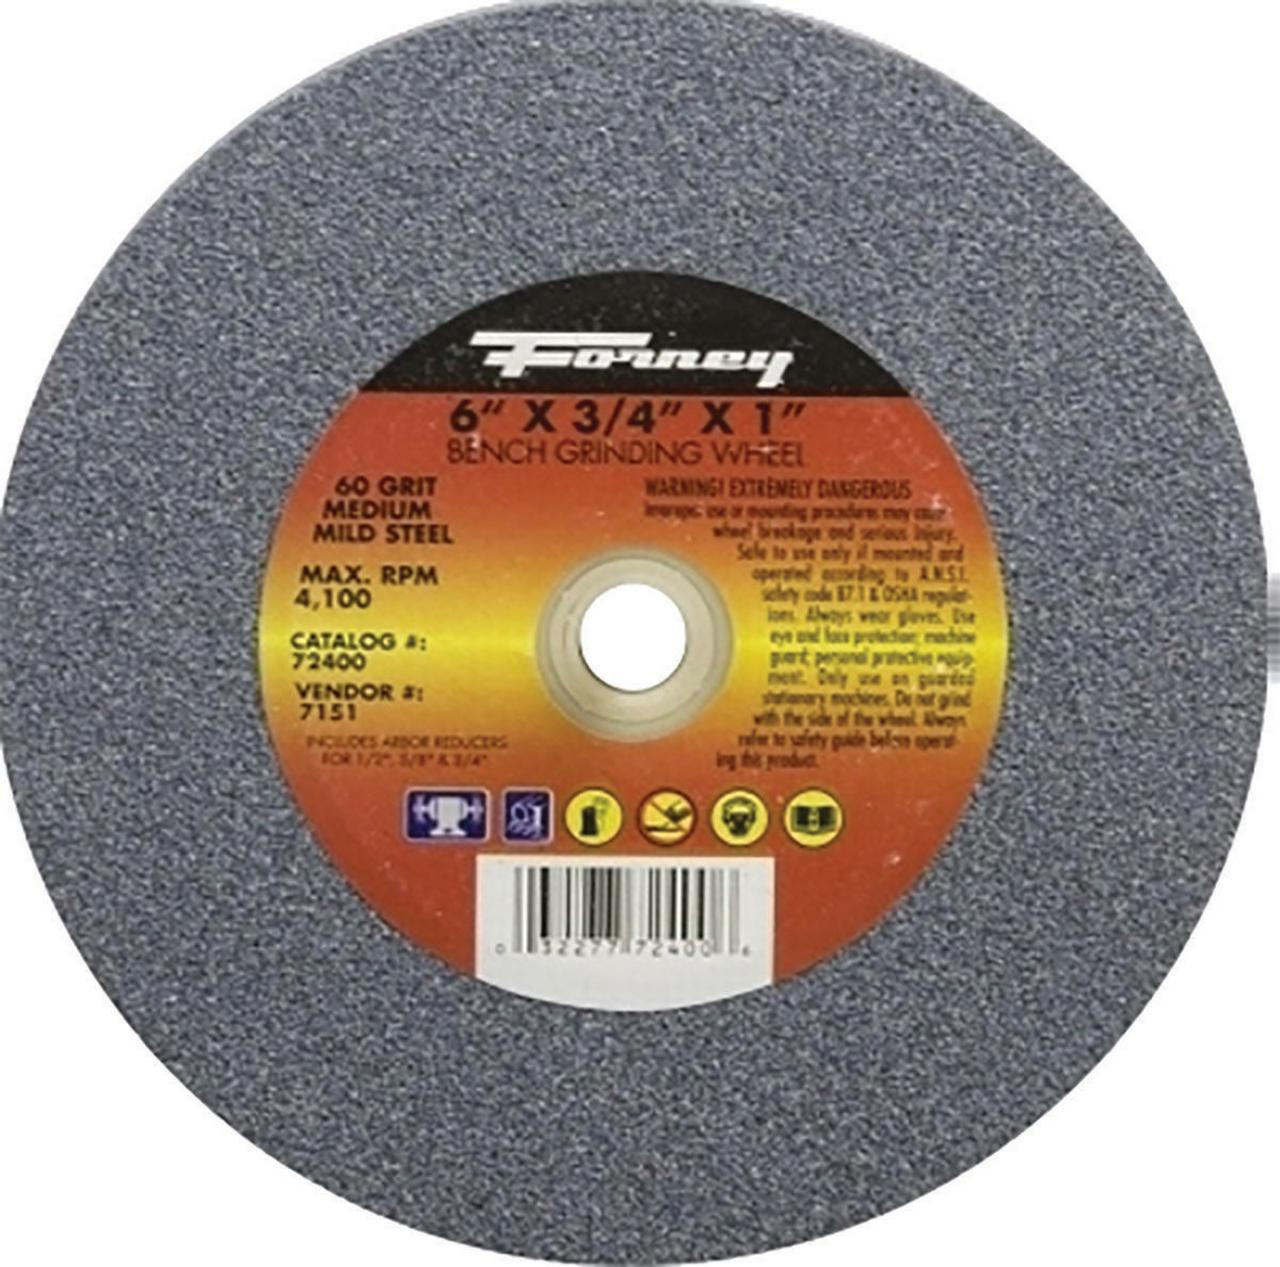 Forney Industries 72400 Type 1 Circular Shape Flat Grinding Wheel, 6 in Dia x 3/4 in T, 60 Grit, 1 i